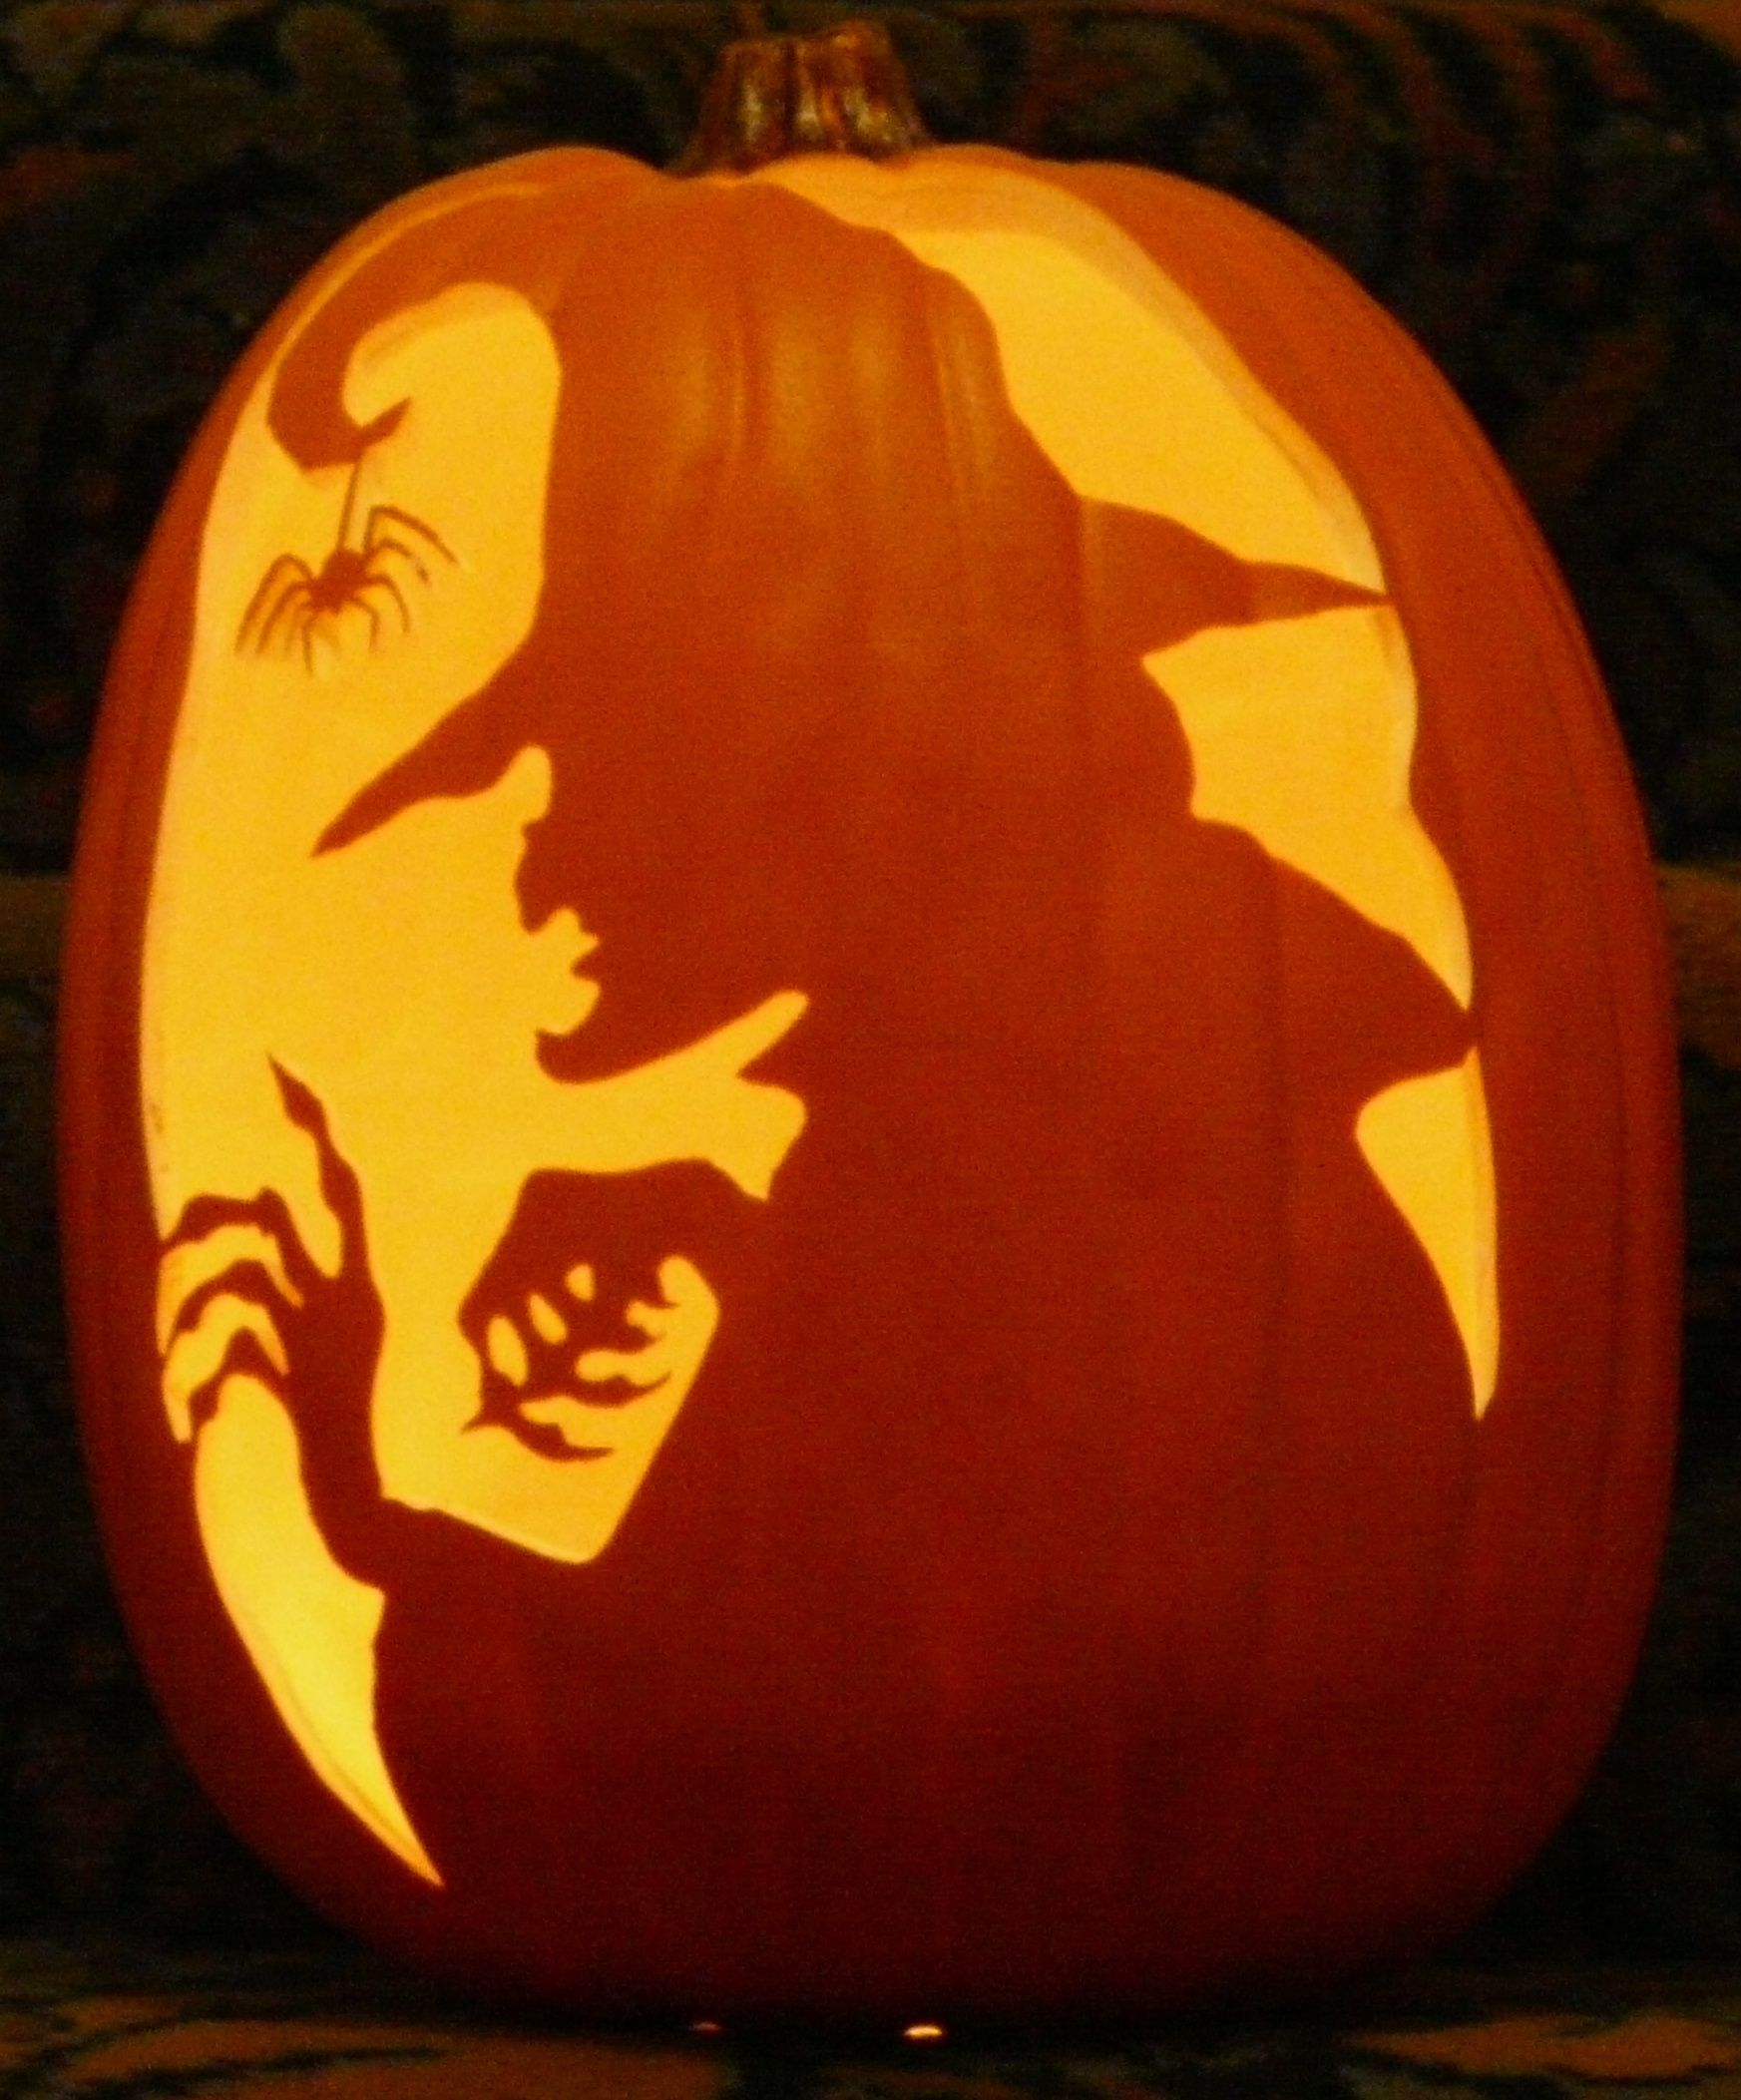 This Is A Witch Silhouette That I Carved On A Foam Pumpkin Pumpkin Carving Scary Pumpkin Carving Amazing Pumpkin Carving